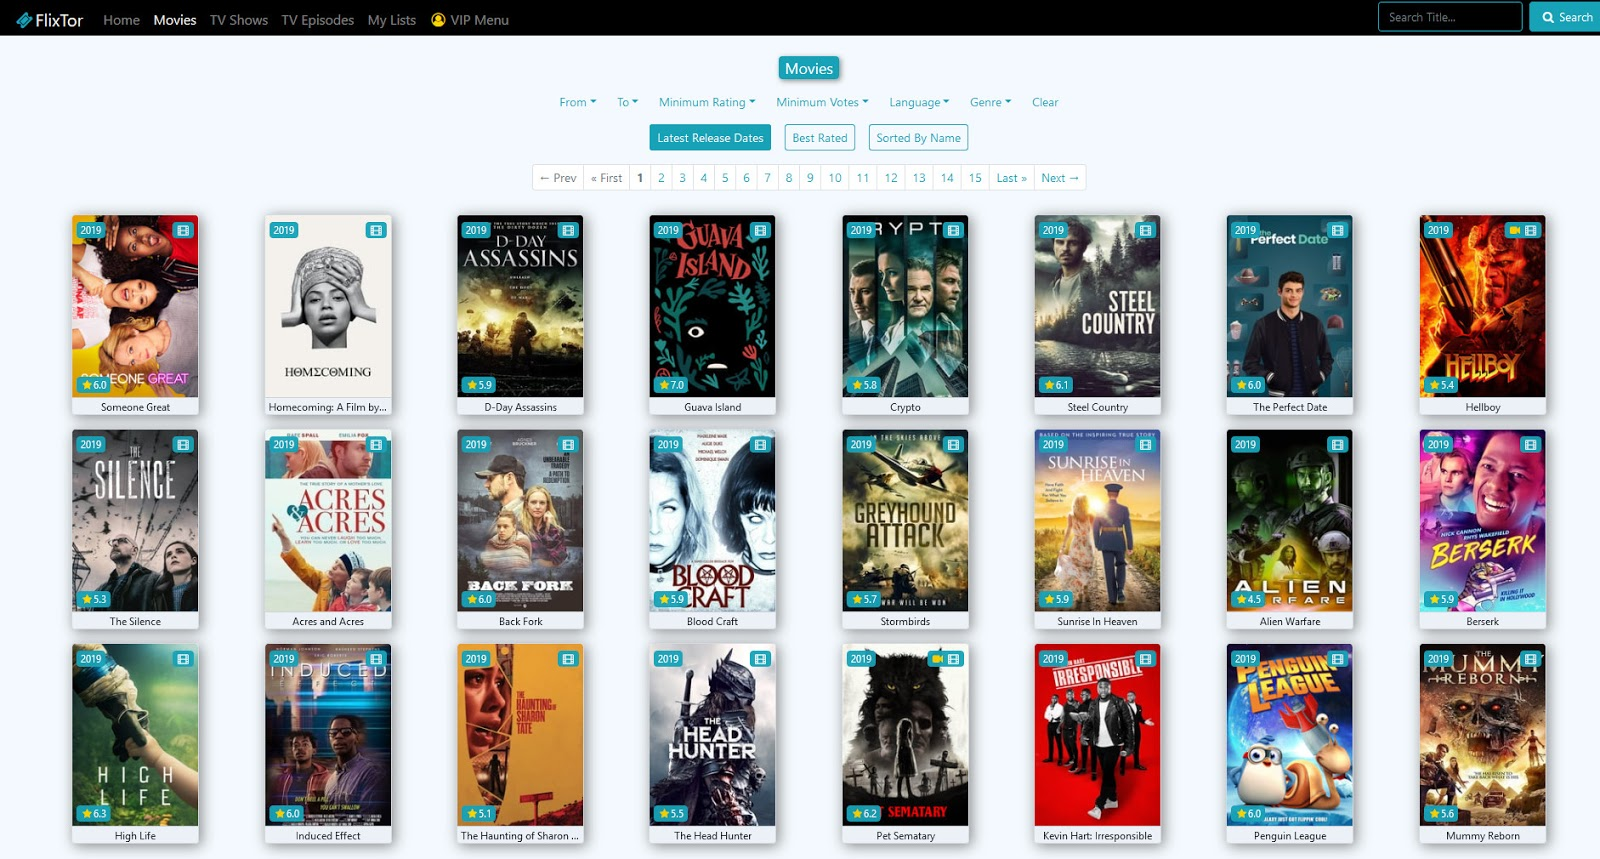 free streaming of movies and tv shows on flixtor